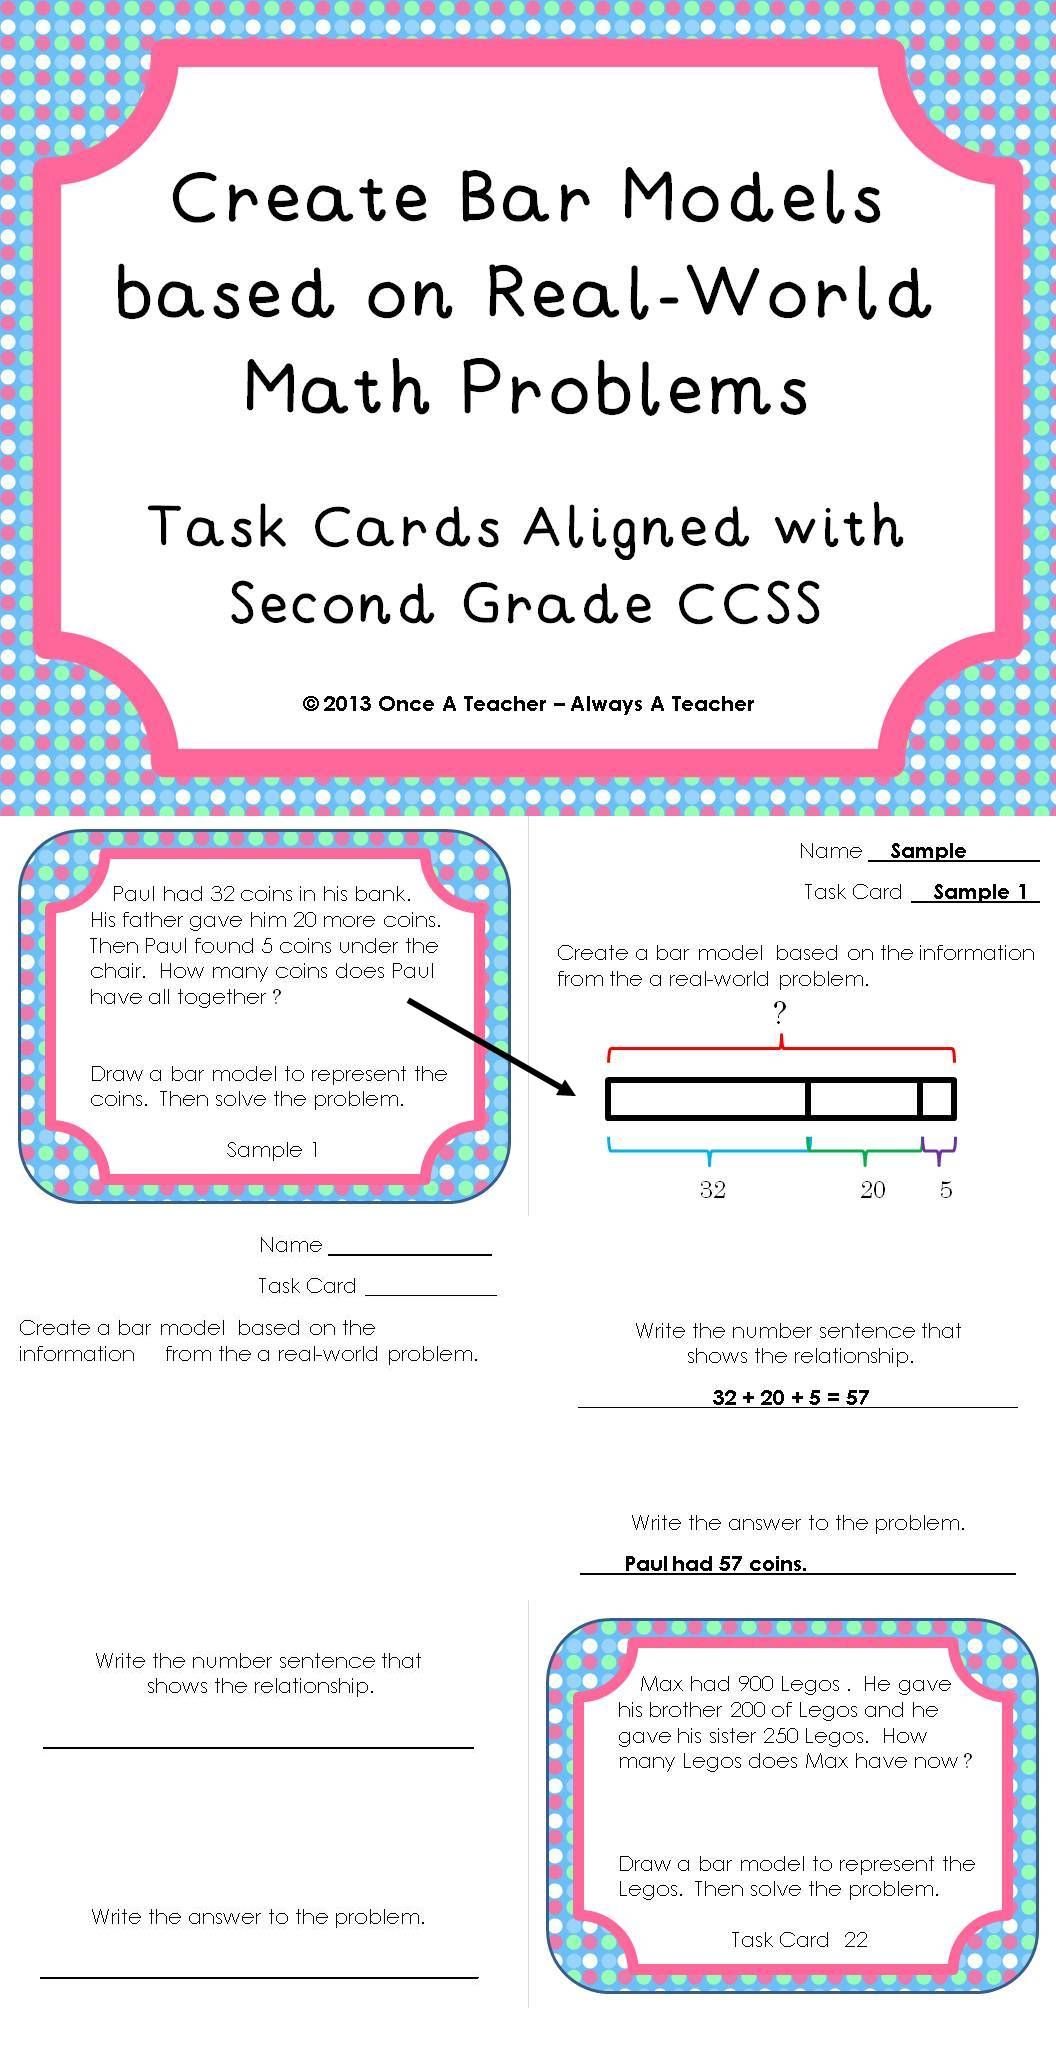 Create Bar Models based on Real-World Math Problems - Task Cards in ...